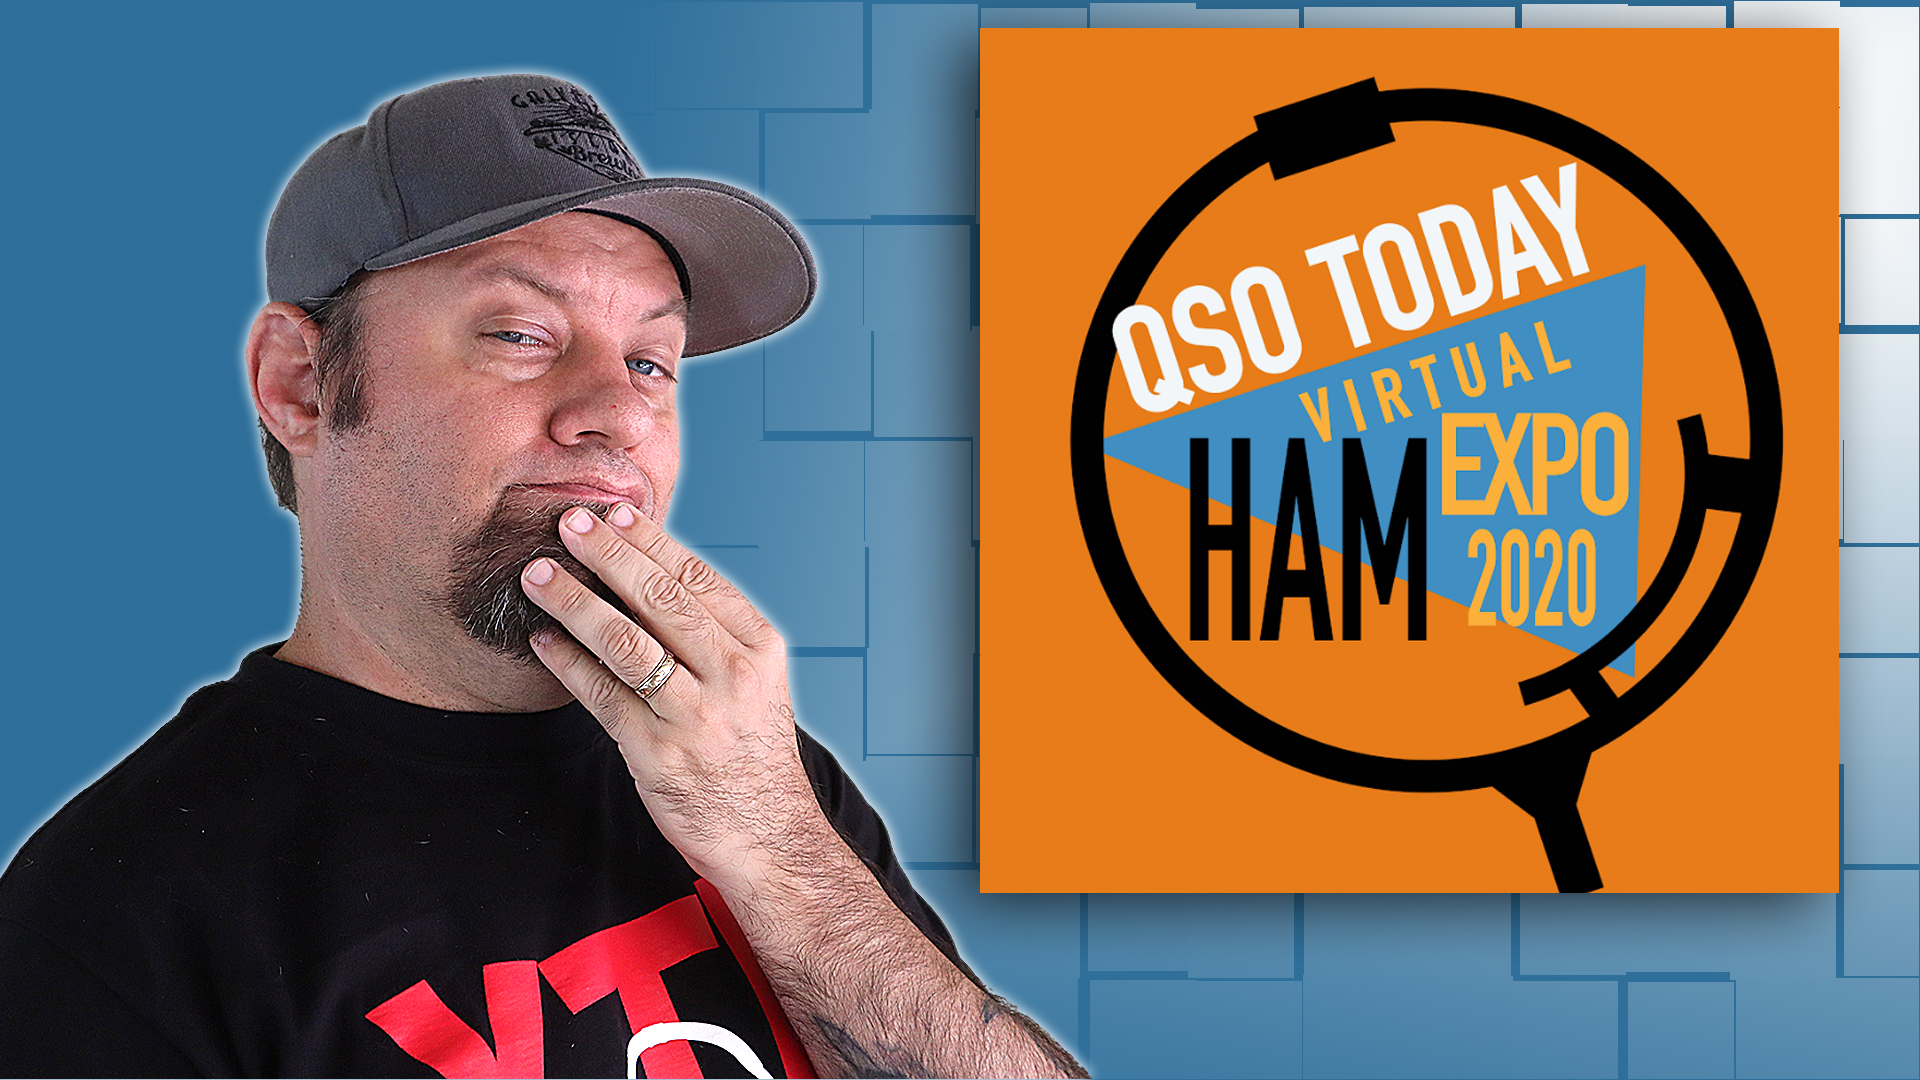 Episode 419: QSO Today Virtual Ham Expo Scheduled for Aug 7-9   Virtual Hamfest